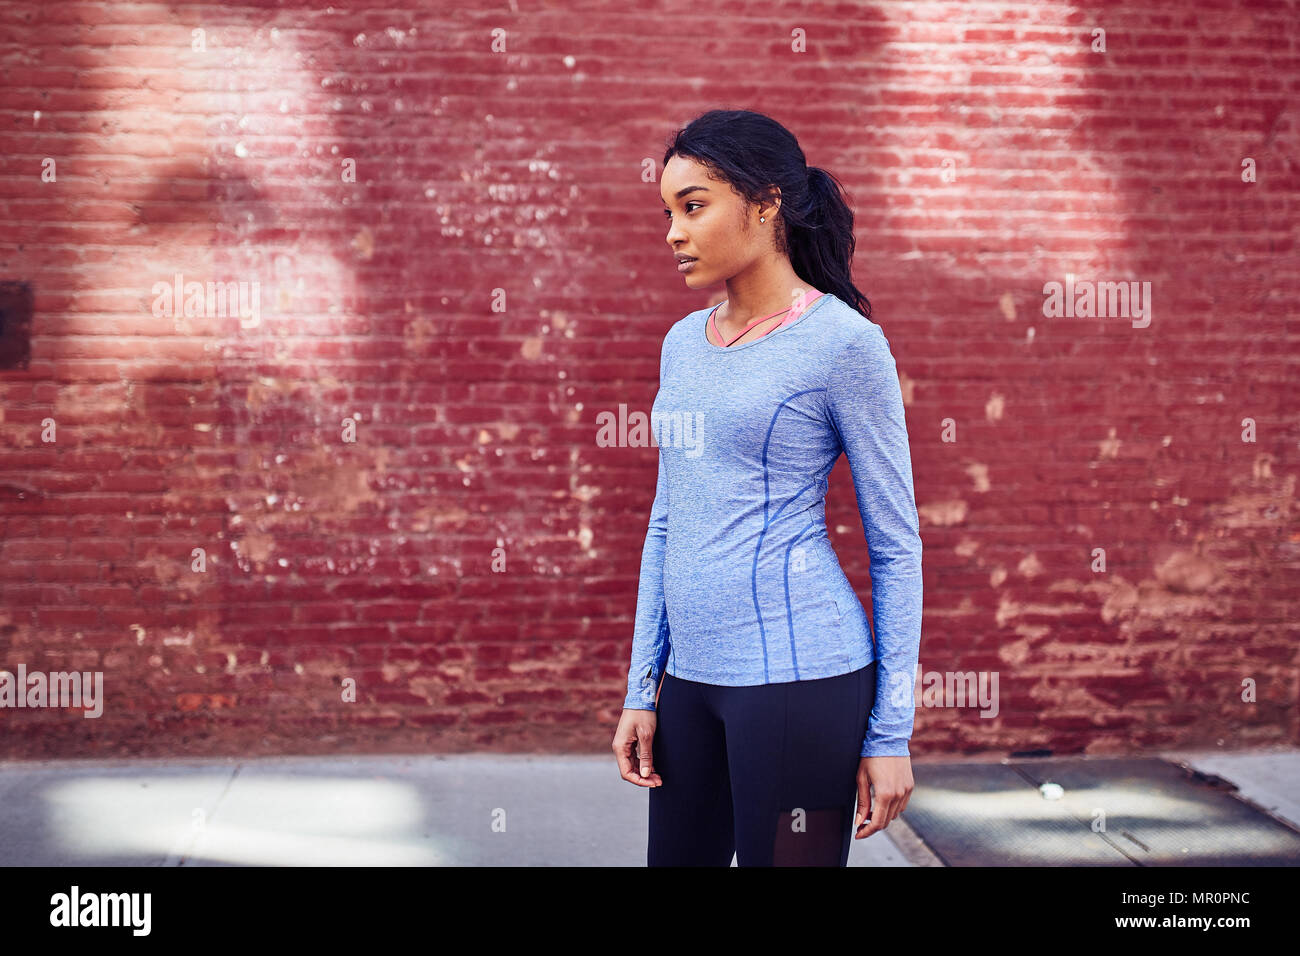 Black woman rests after running Stock Photo